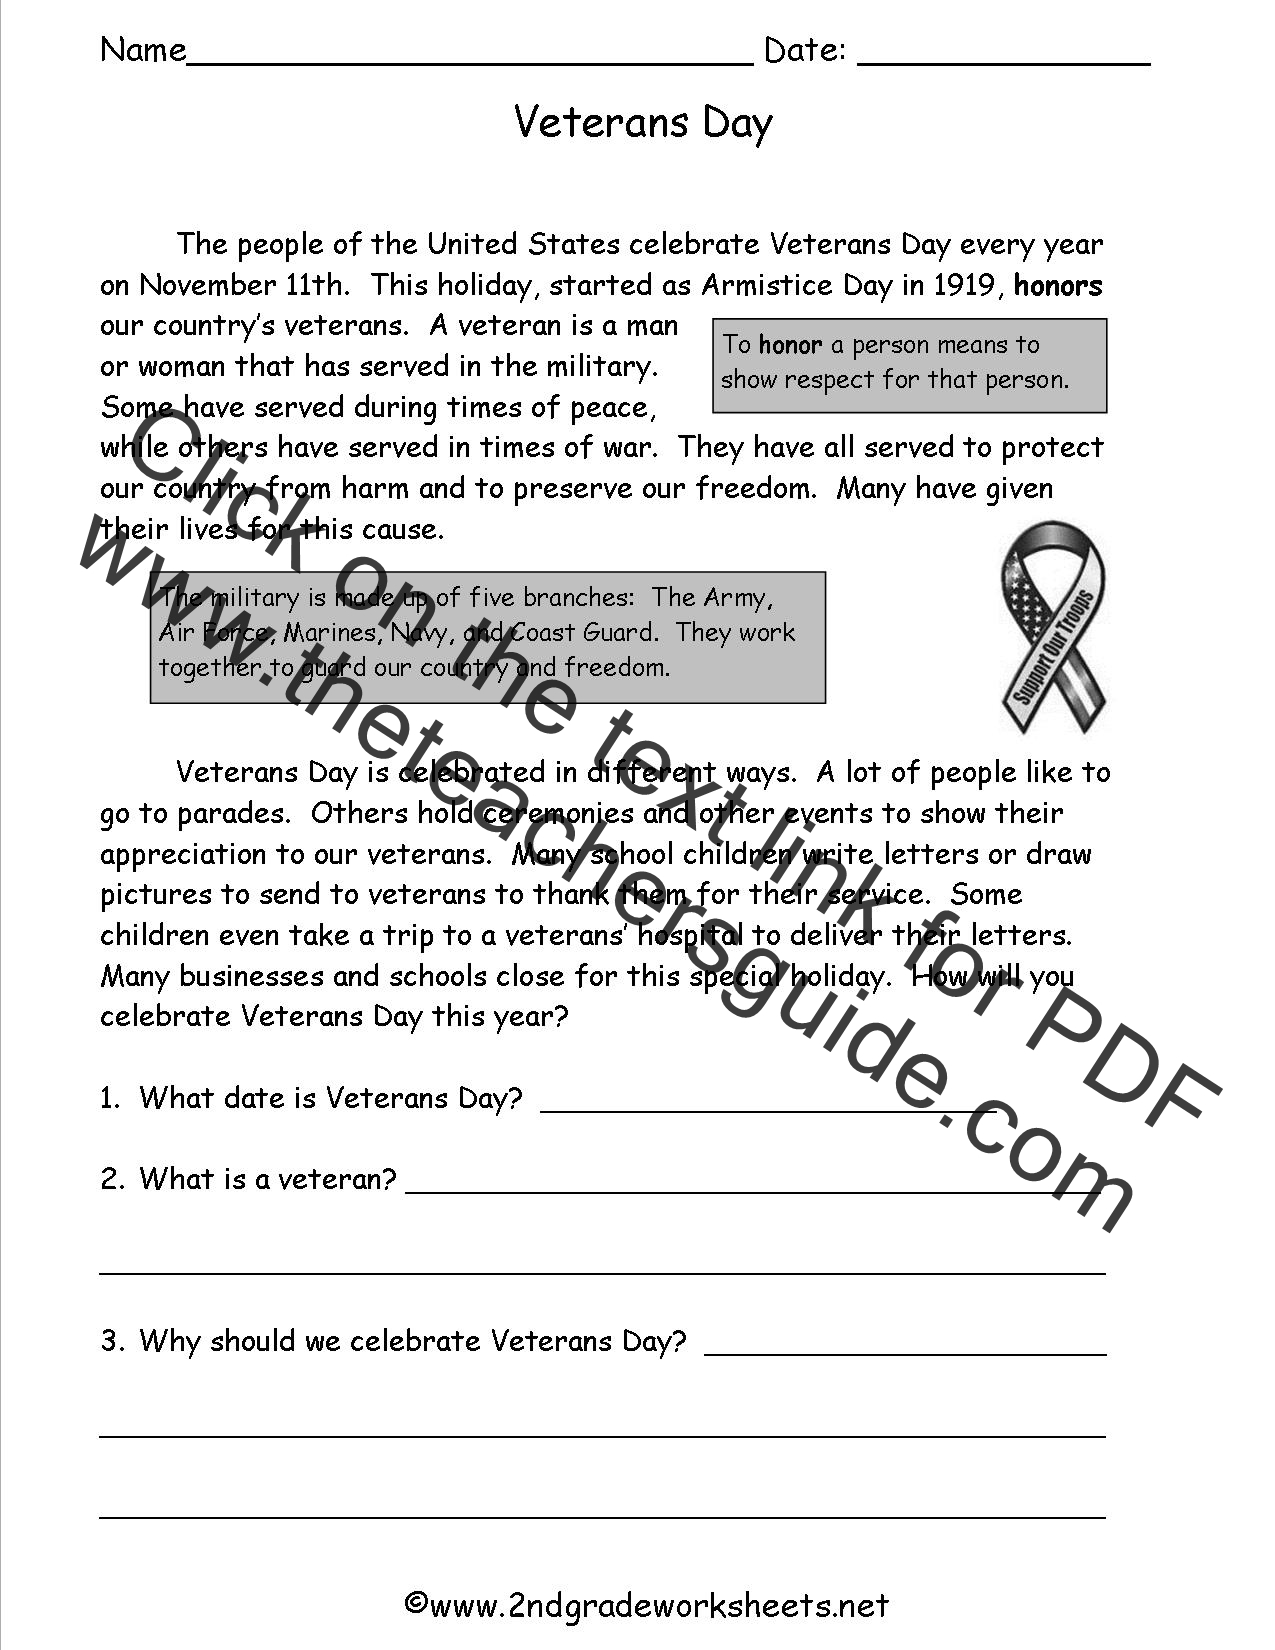 Worksheets Second Grade Reading Worksheets Free Printable veterans day worksheets worksheets